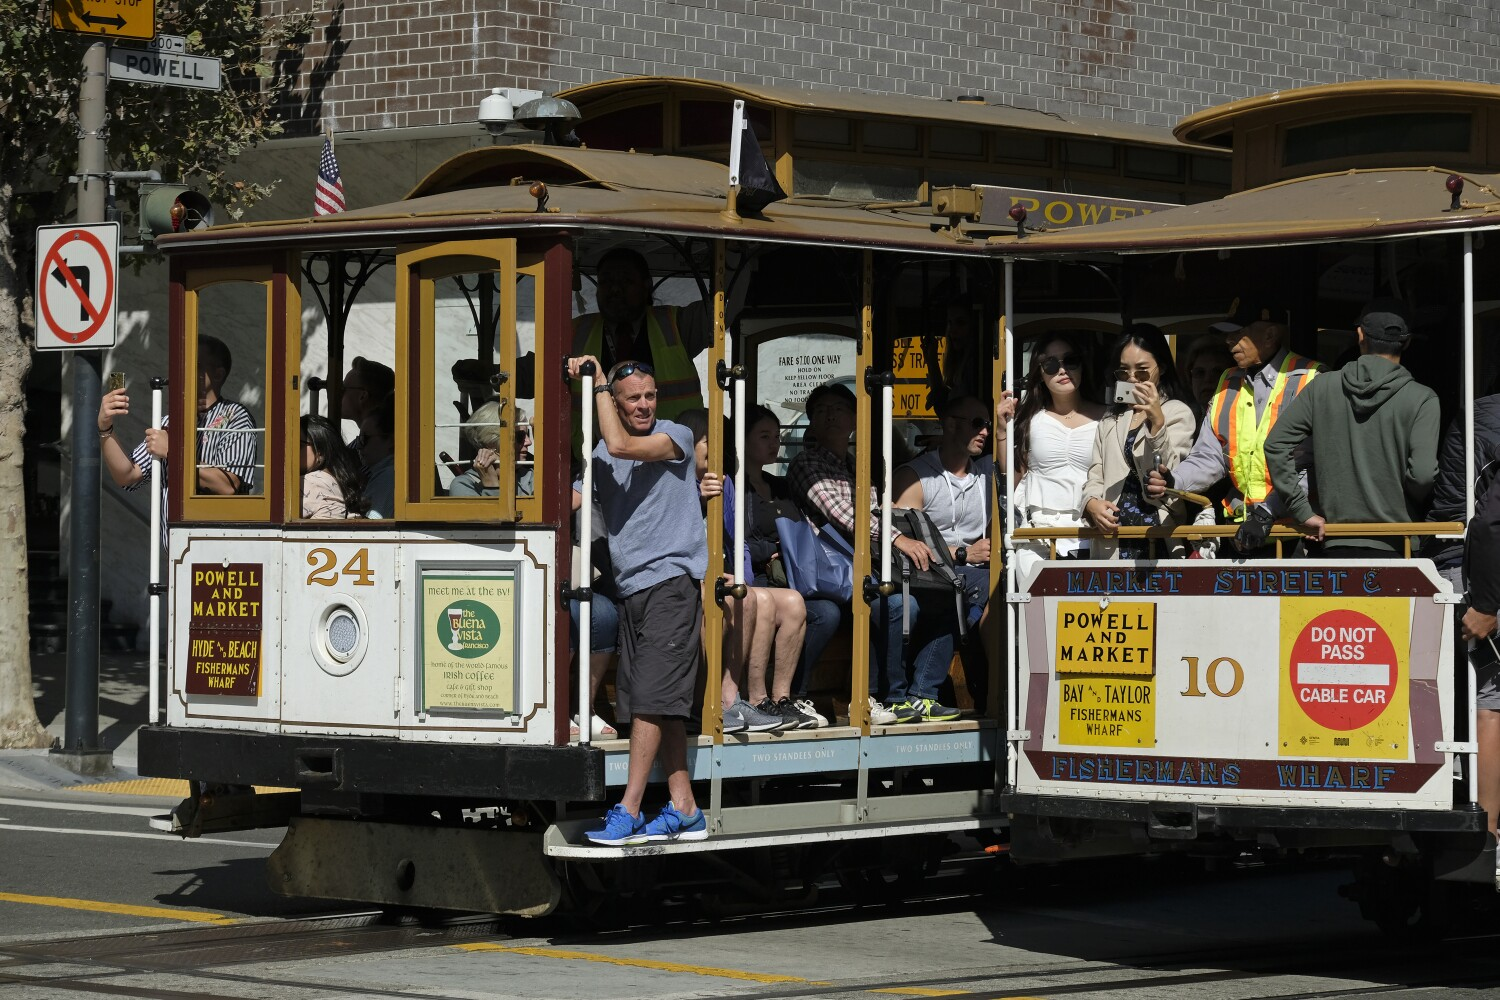 Cable cars to return to San Francisco as pandemic ebbs, city reopens